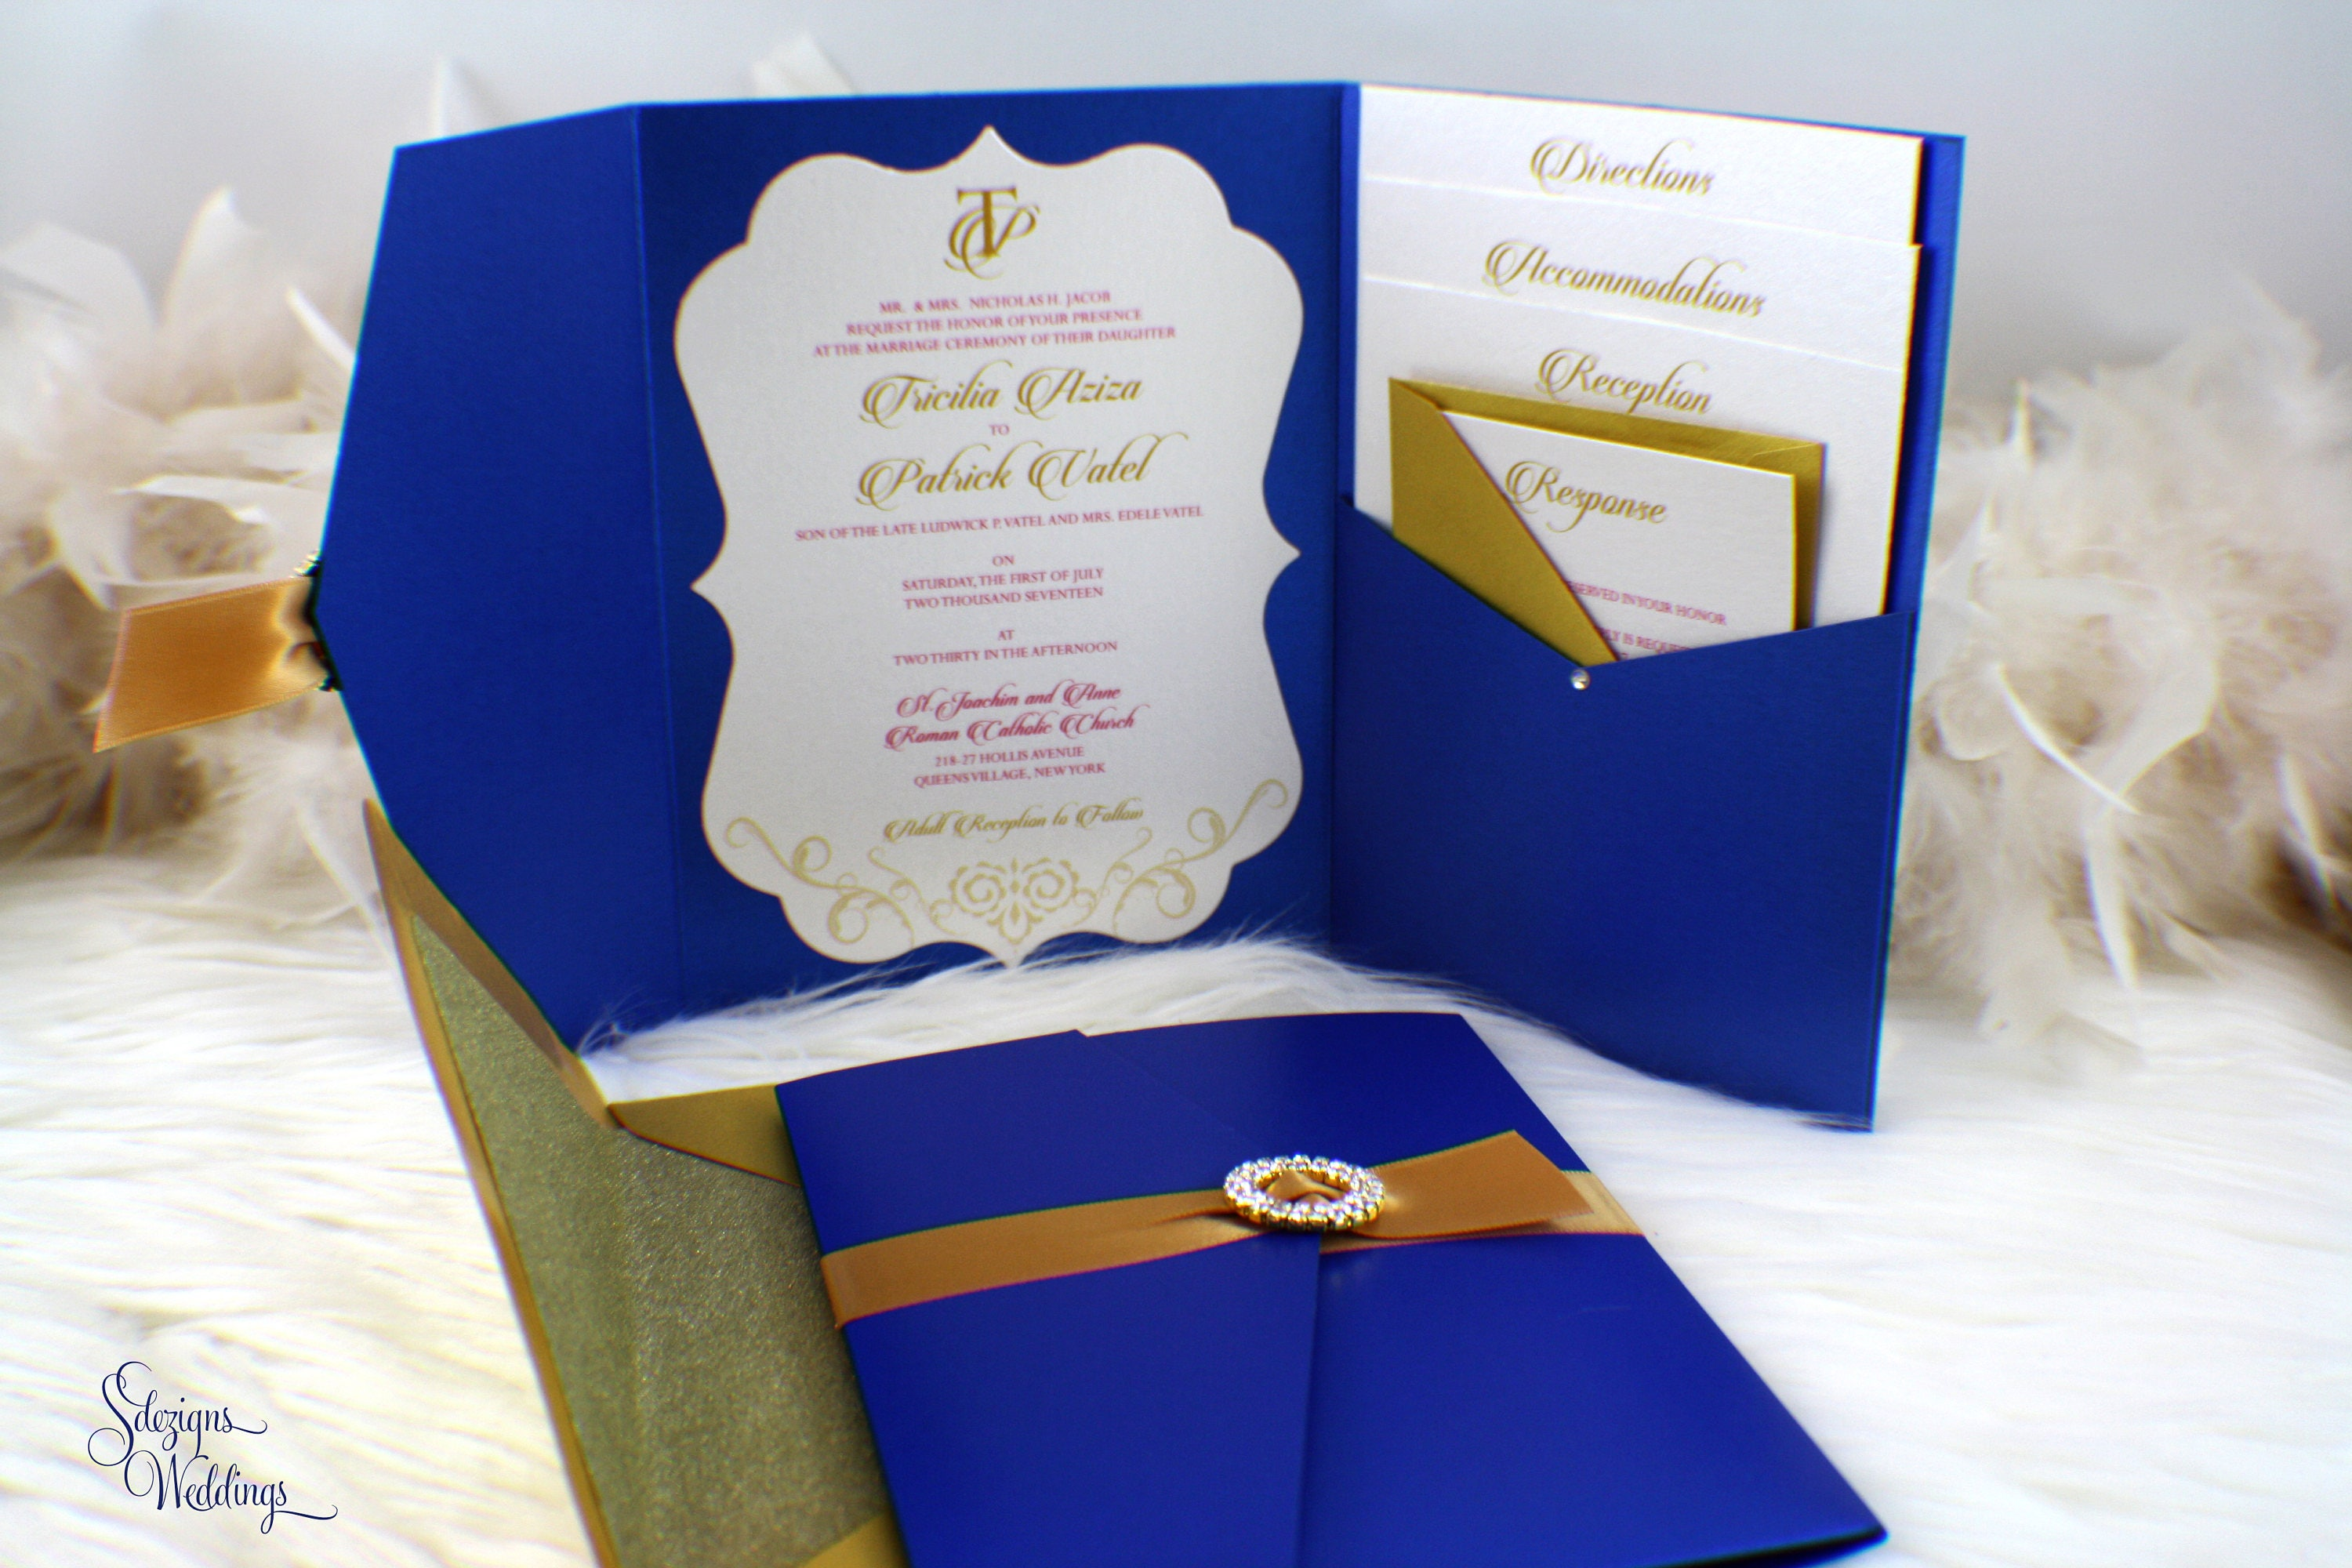 Wedding Invitation Designs Royal Blue: Royal Wedding Invitation Blue And Gold Invitation Pocket